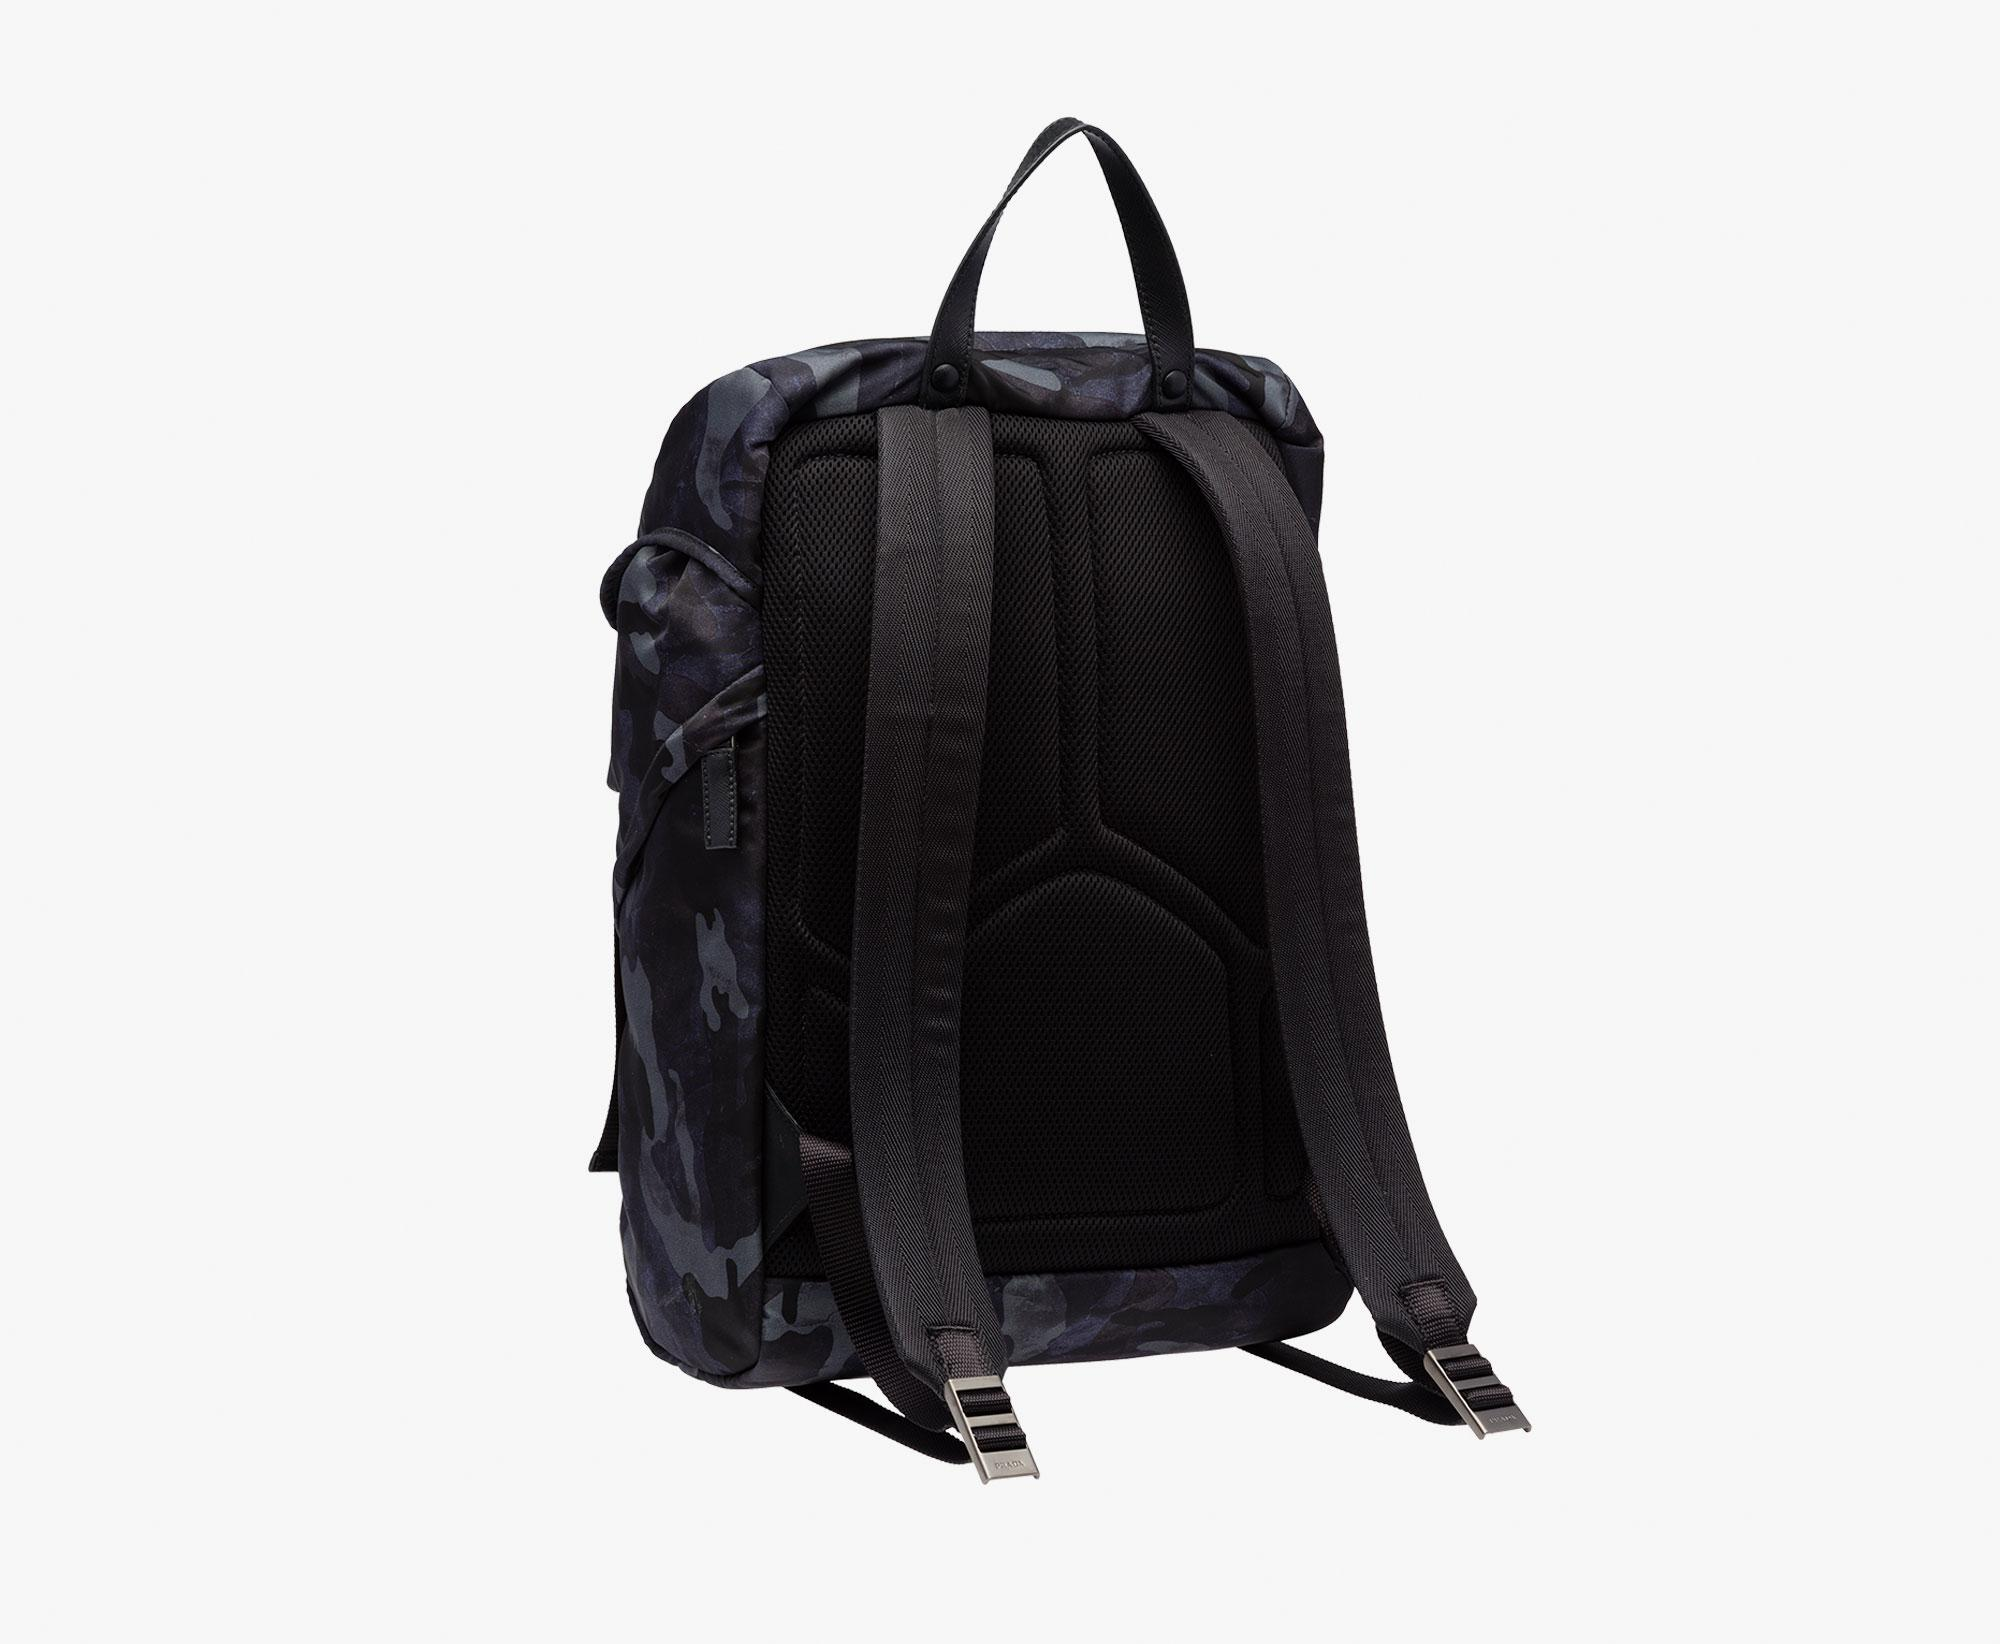 8ca9d6fe1de8 uk prada black camouflage nylon drawstring tote bag 054a4 90704; low cost lyst  prada fabric backpack in blue for men 80d6e 3a057